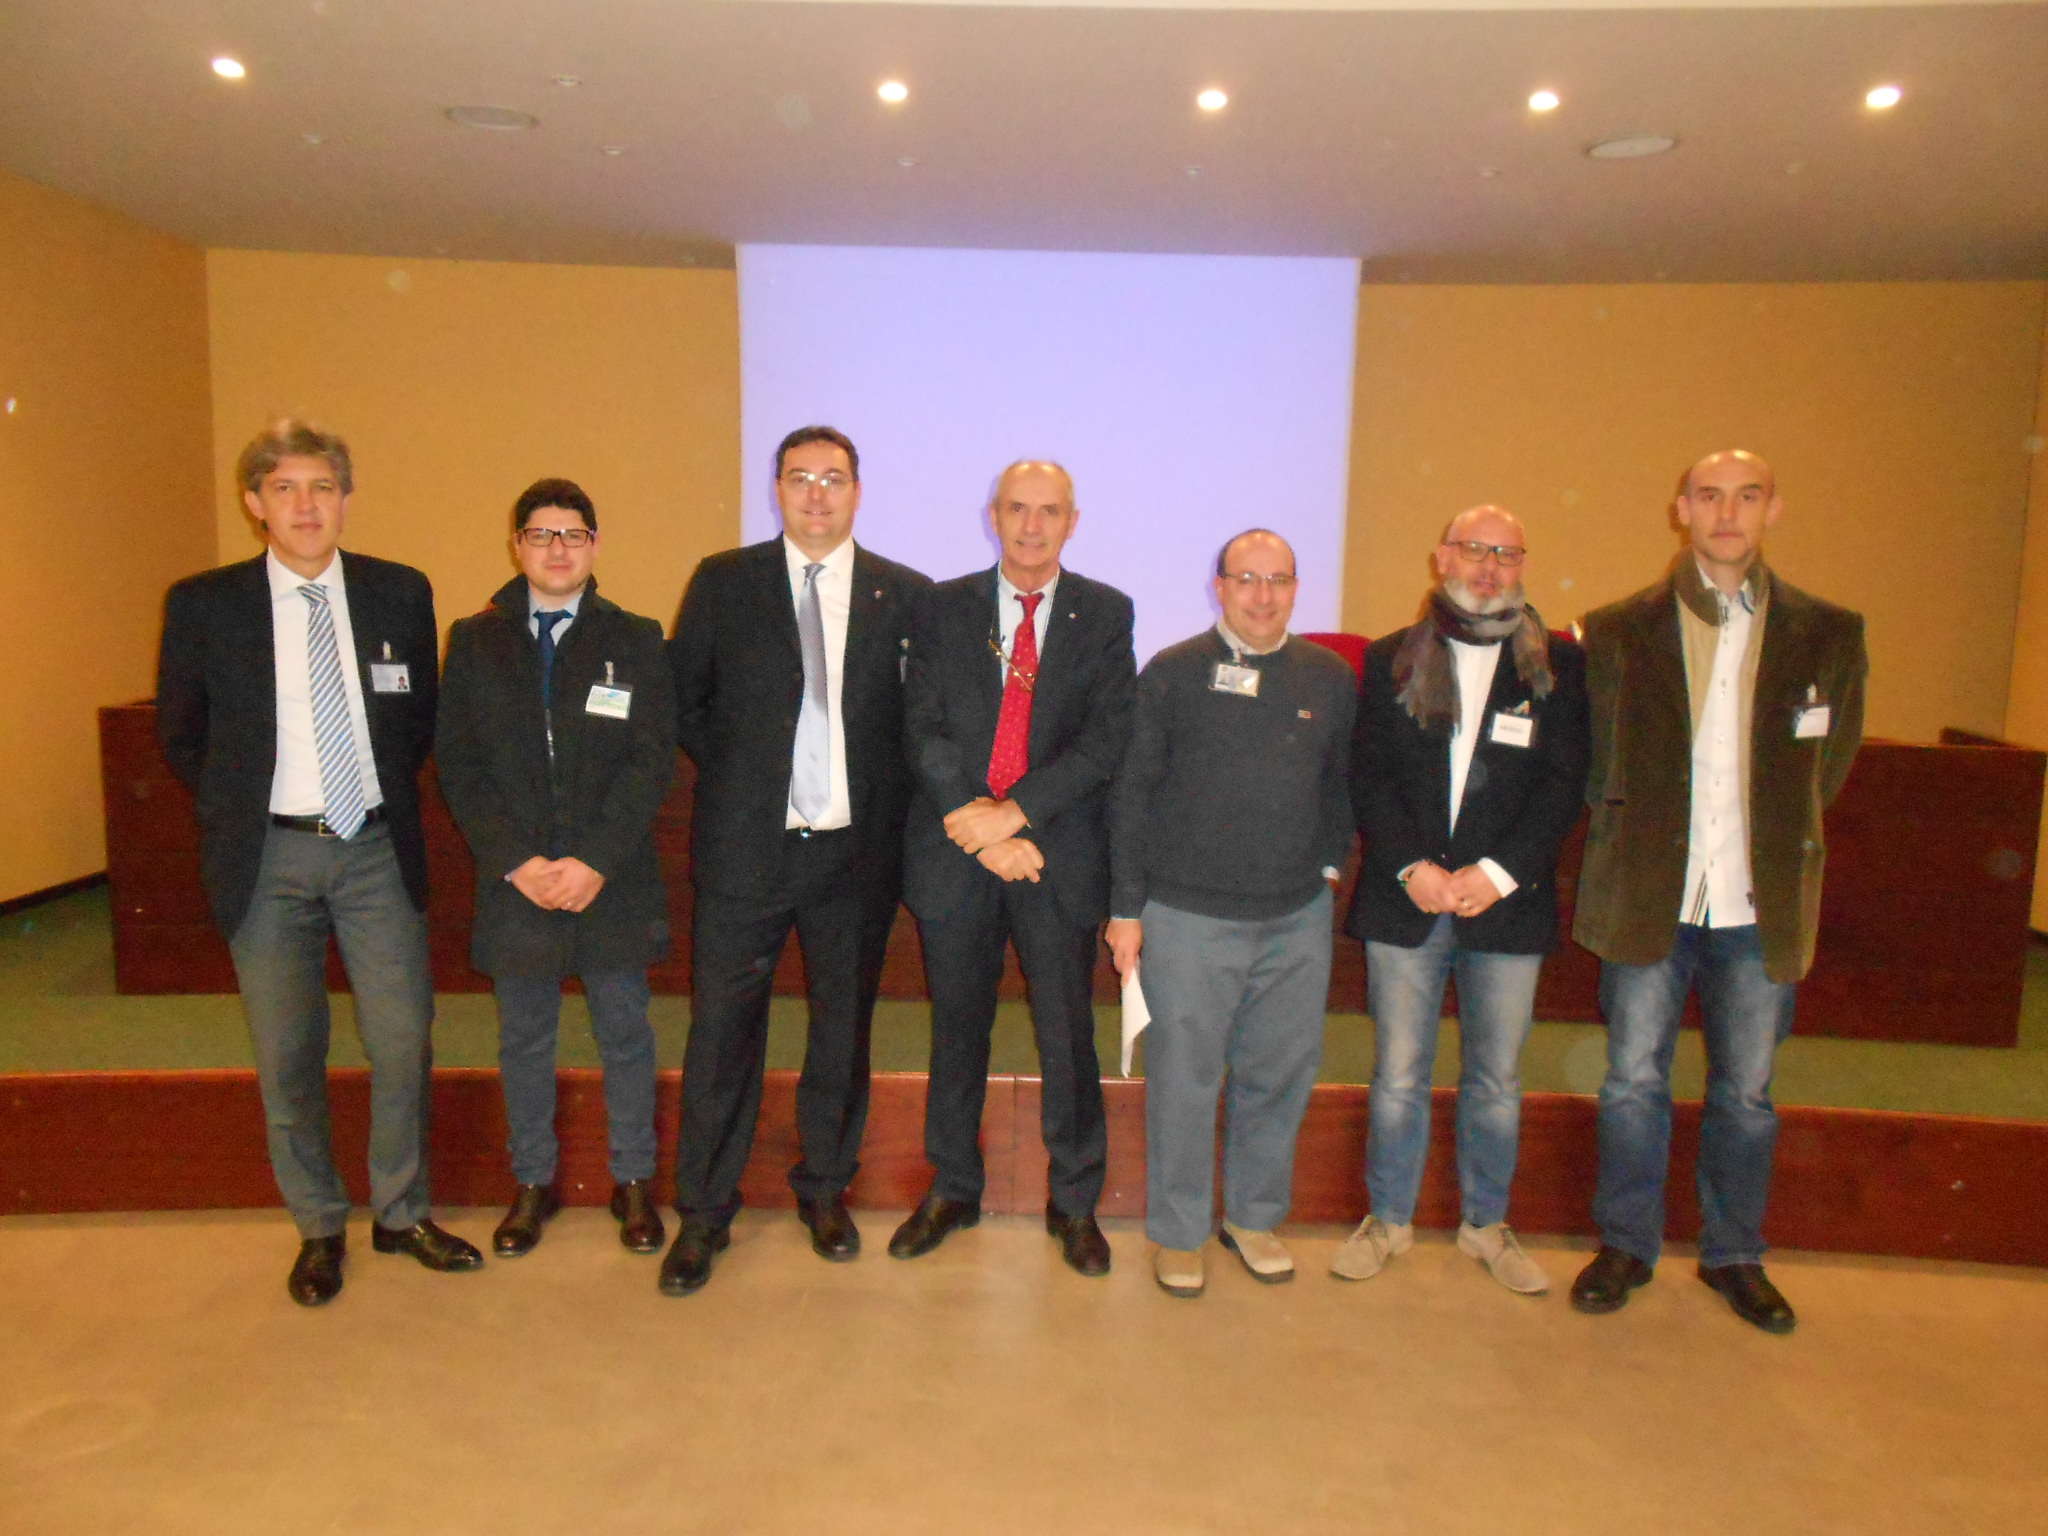 Convegno SINDROME DA EDIFICIO MALATO all'interno dell'evento ENERGY DAYS presso la FIERA DI MONTICHIARI